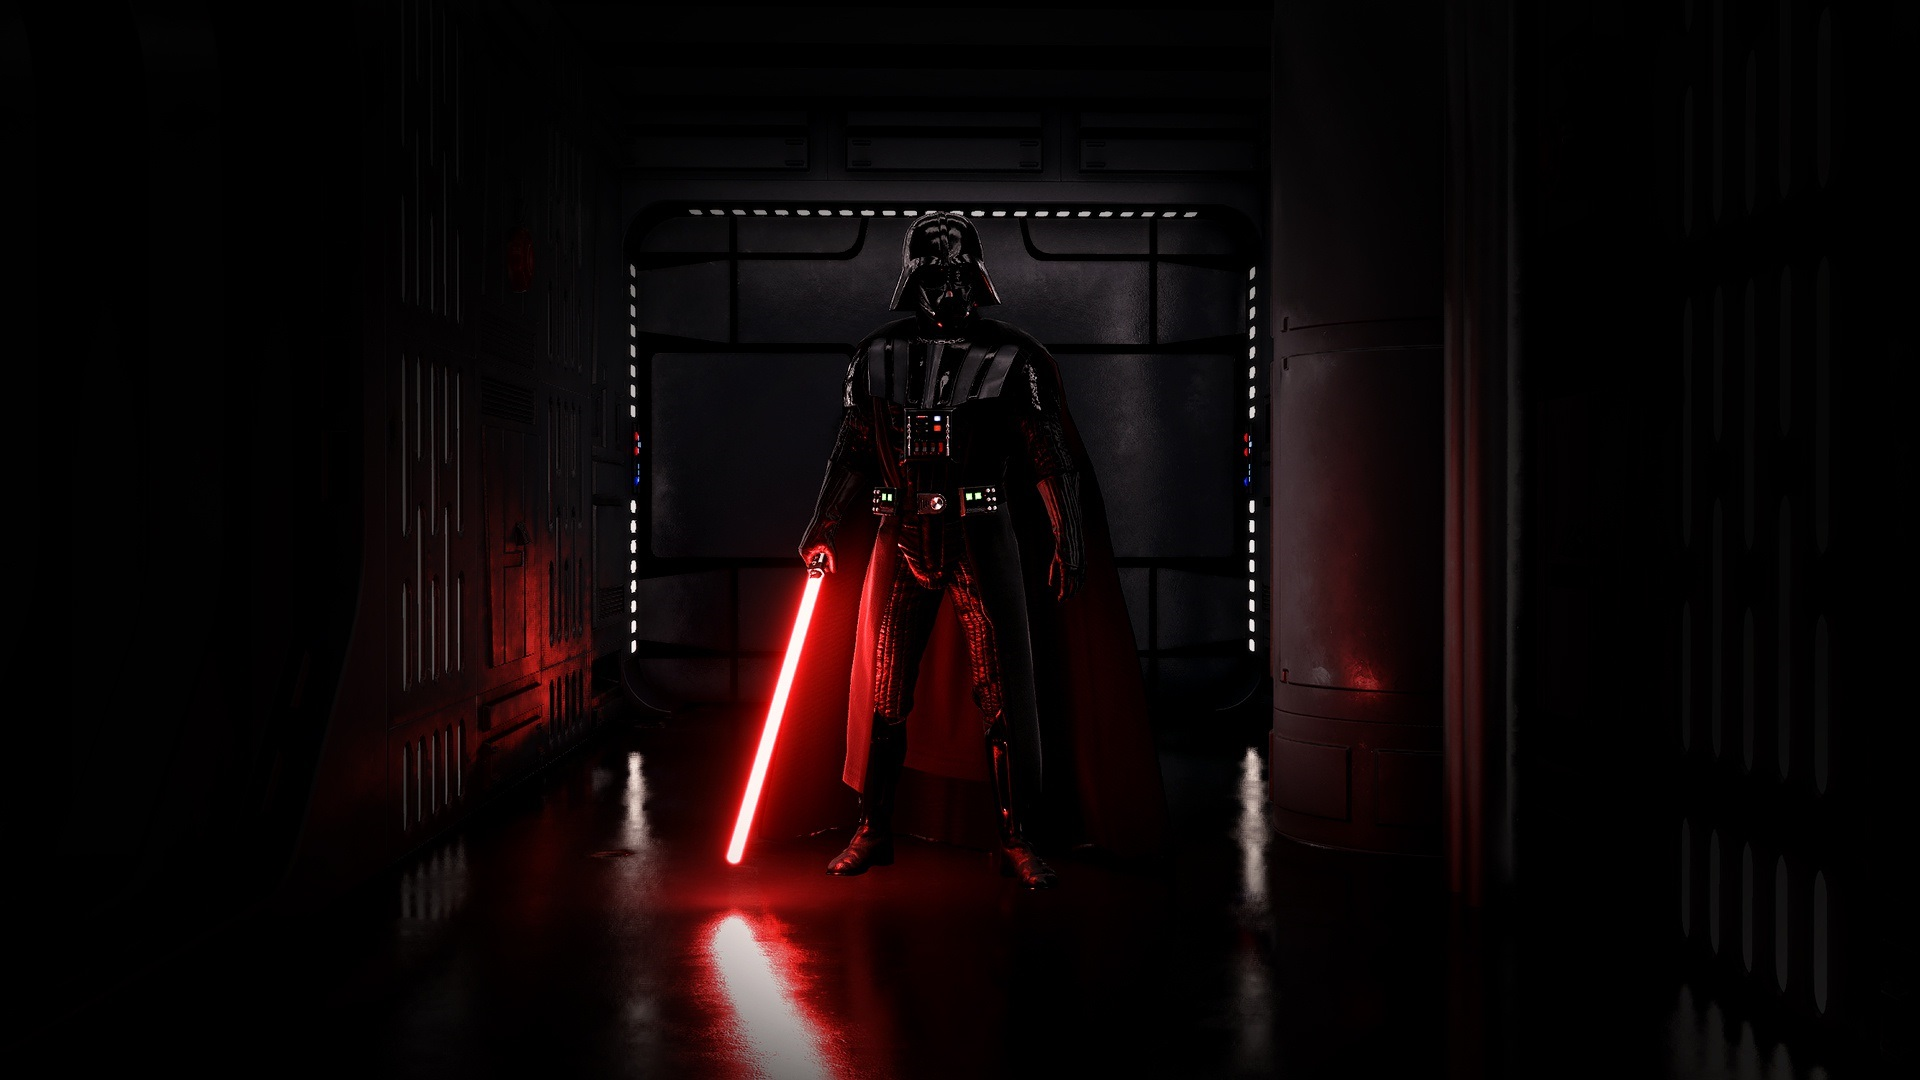 Wallpaper Darth Vader Sword Ea Games Star Wars